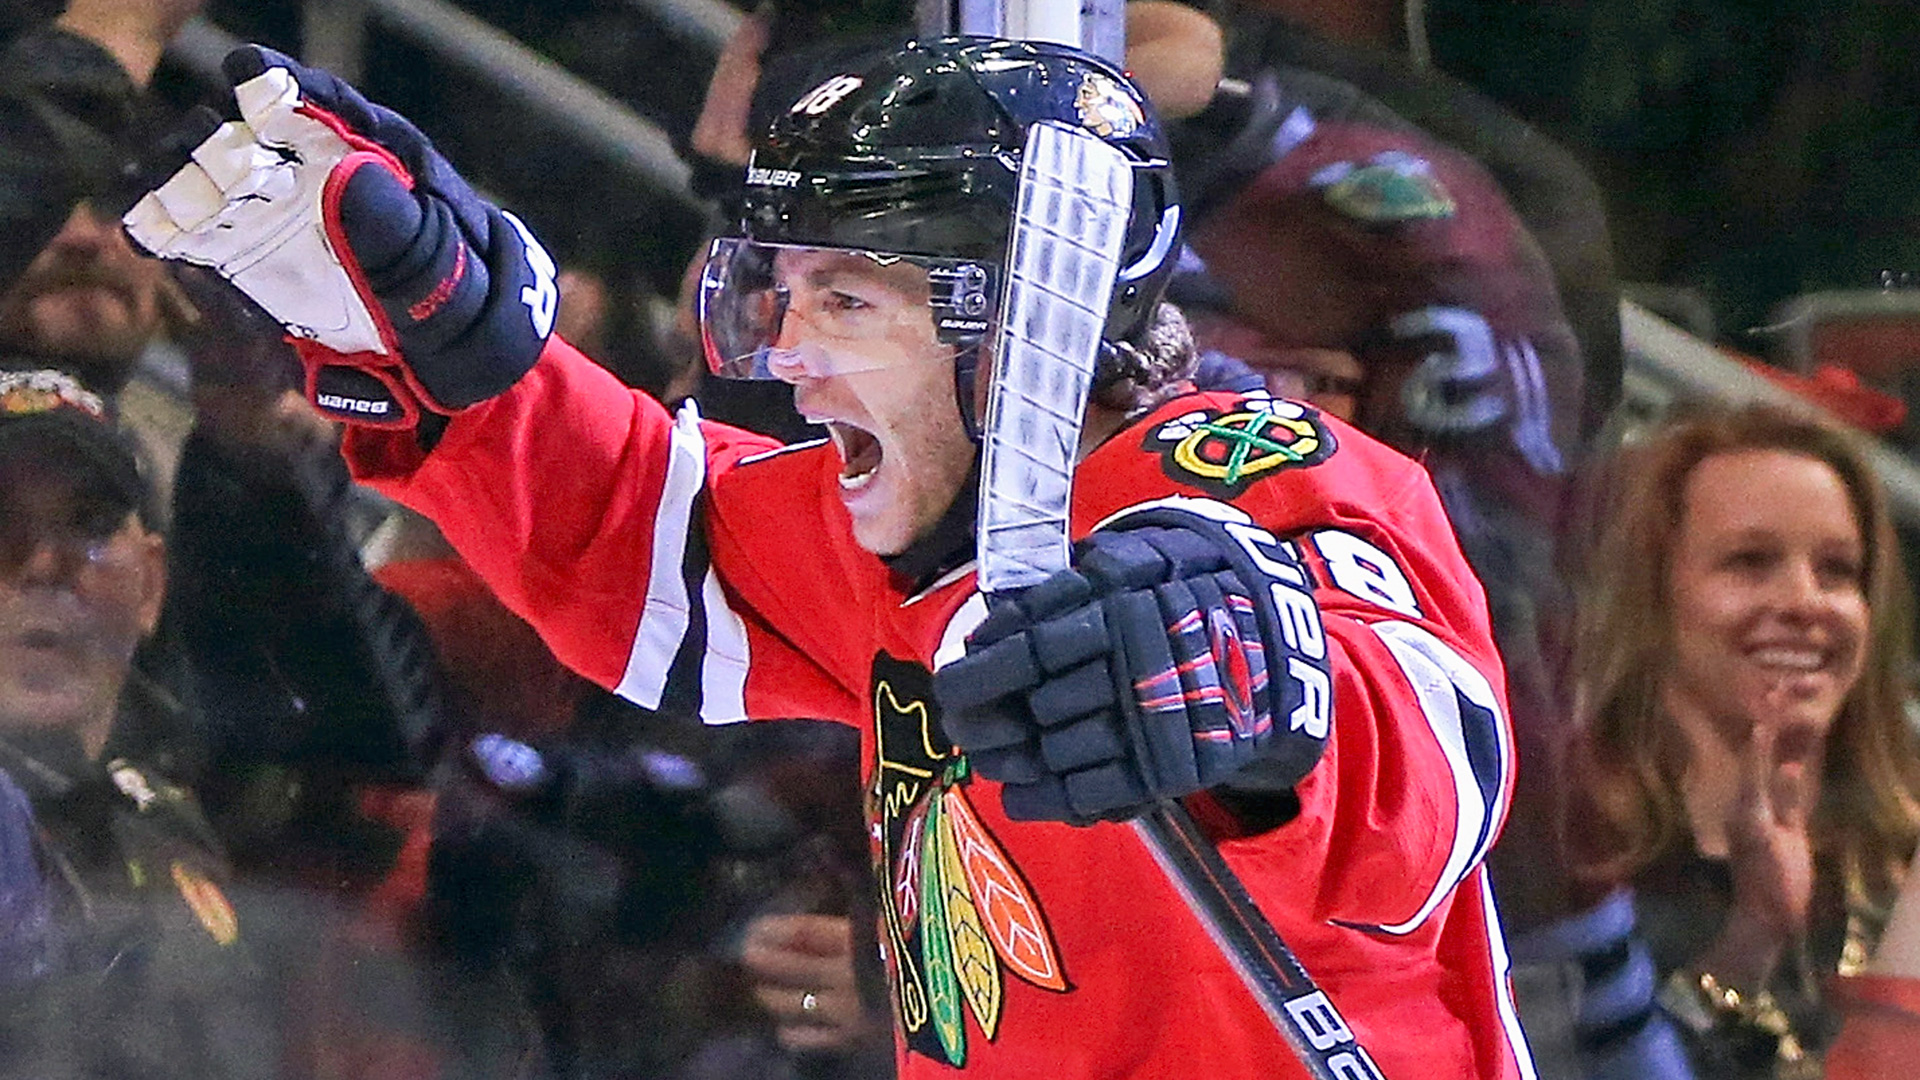 Patrick Kane has goal, 4 assists as Blackhawks rout Sens 8-2